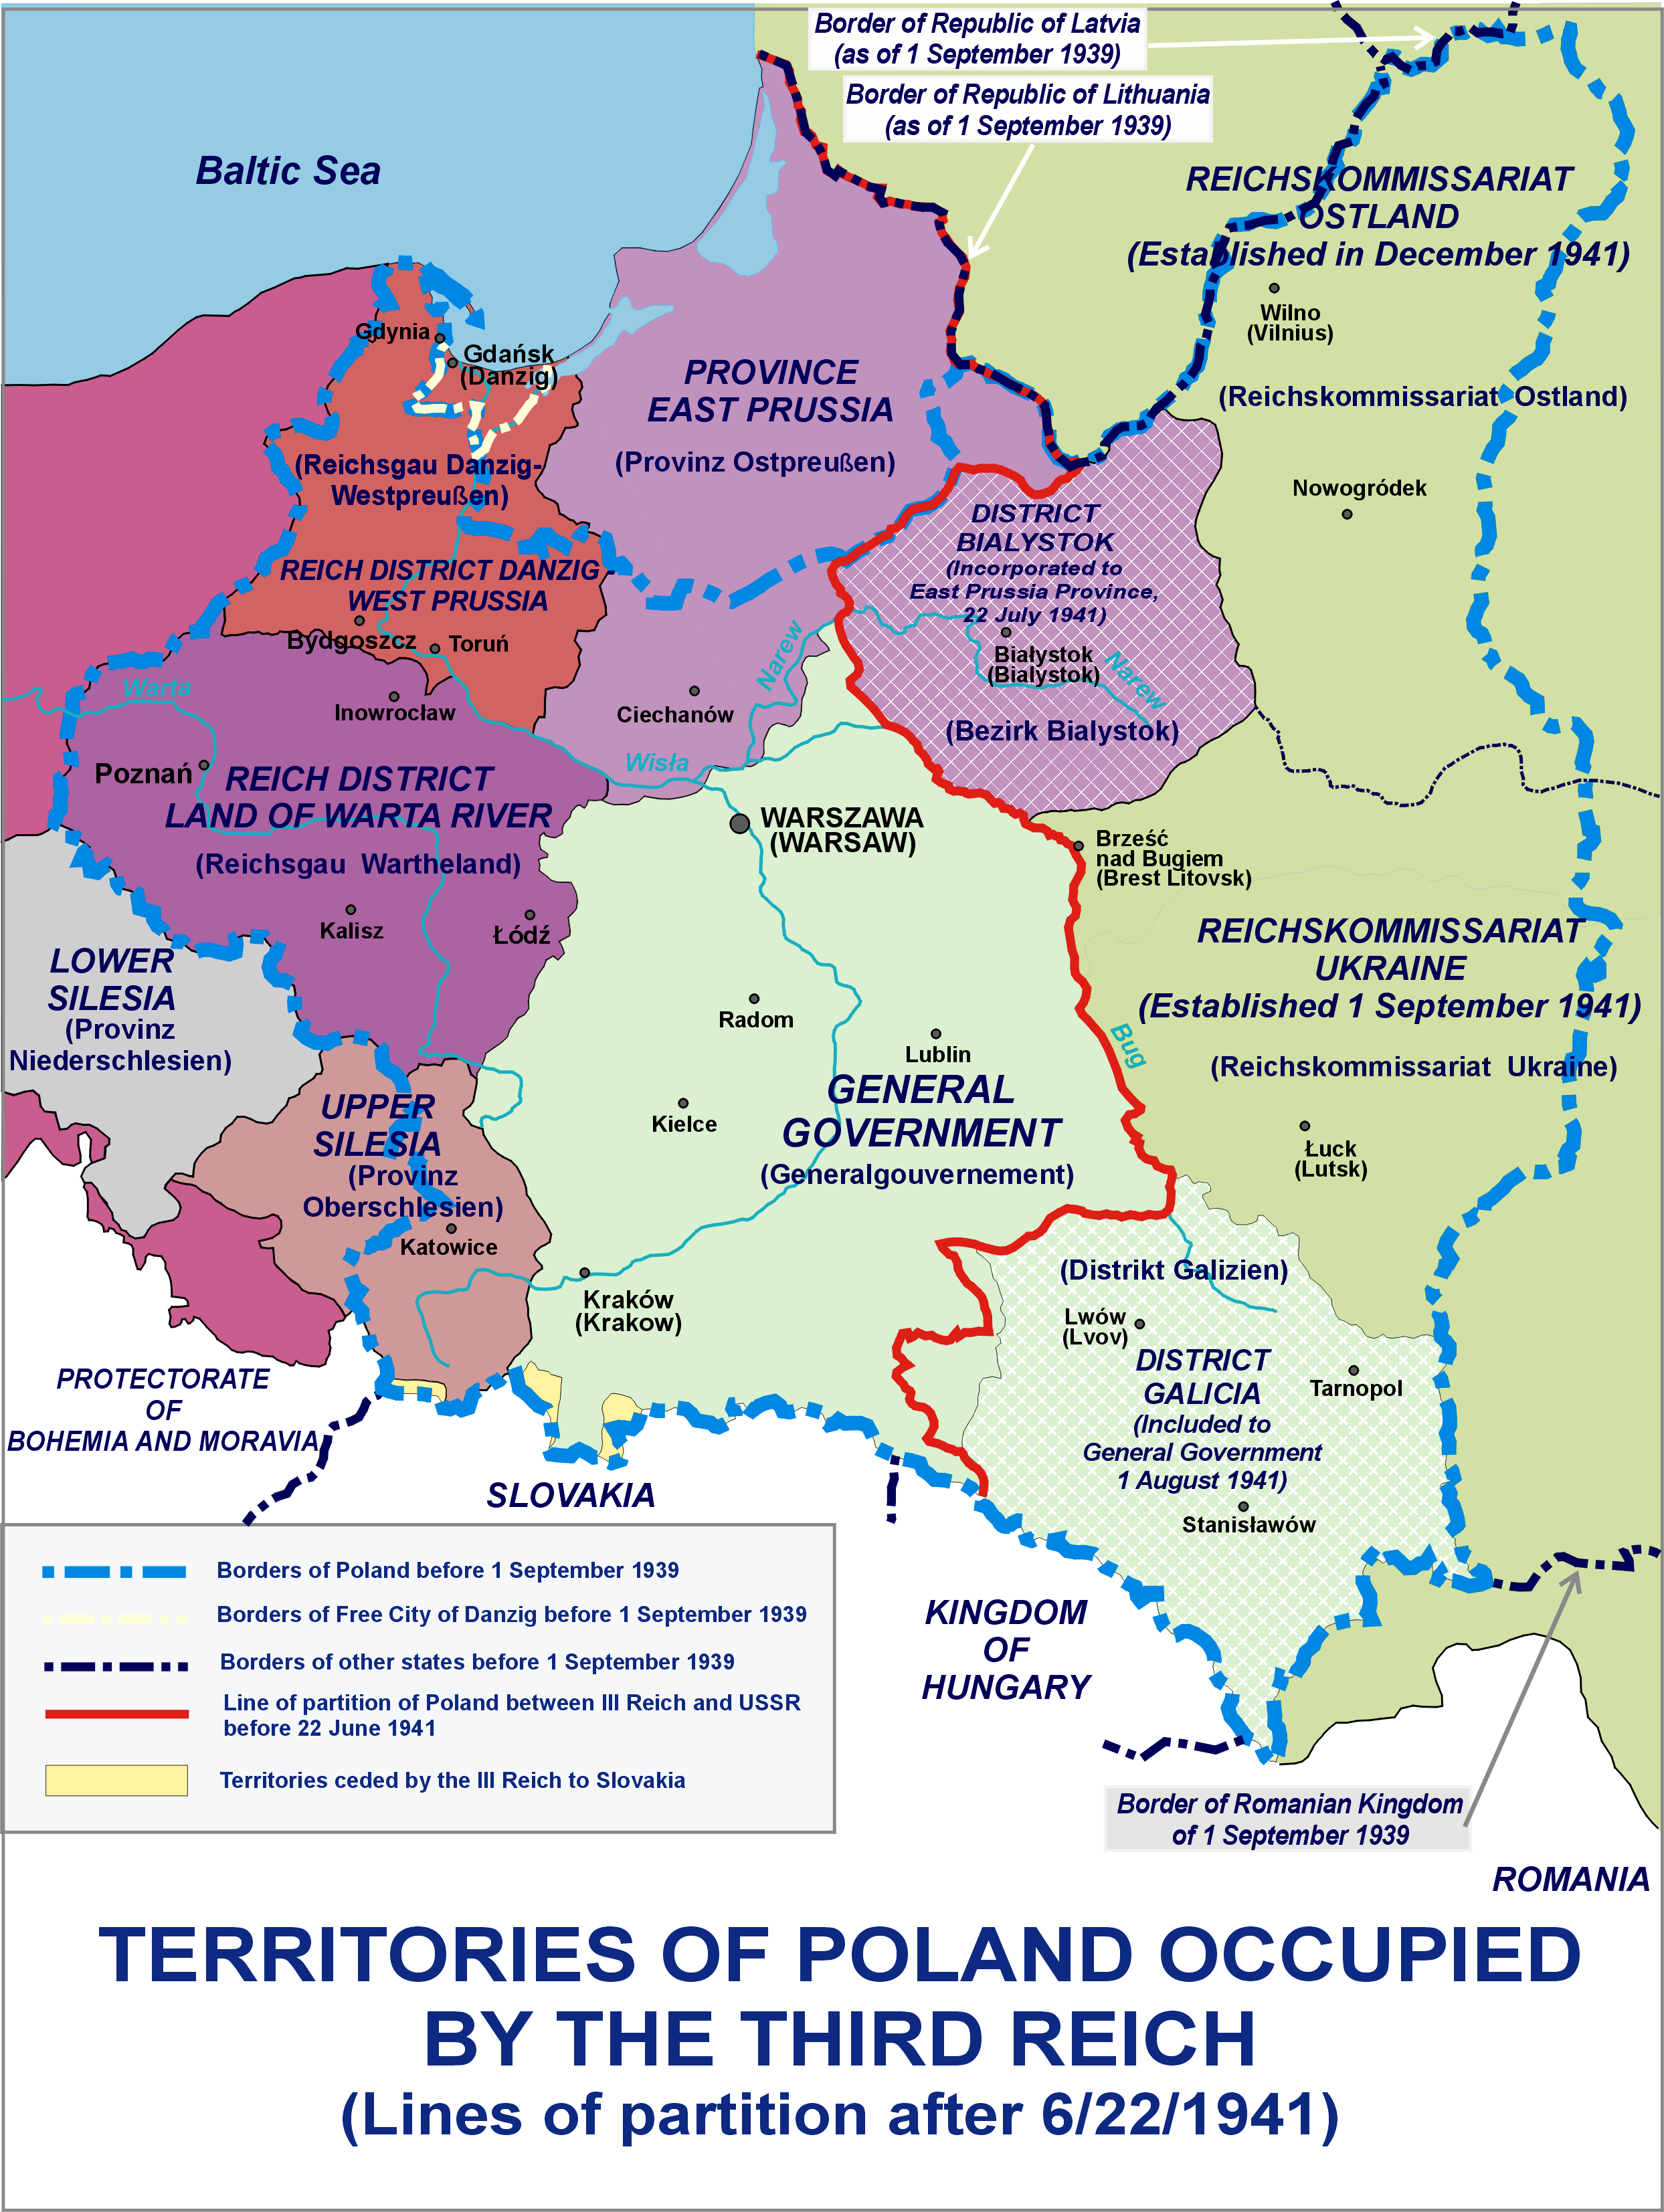 http://upload.wikimedia.org/wikipedia/commons/2/29/Occupation_of_Poland_1941.png